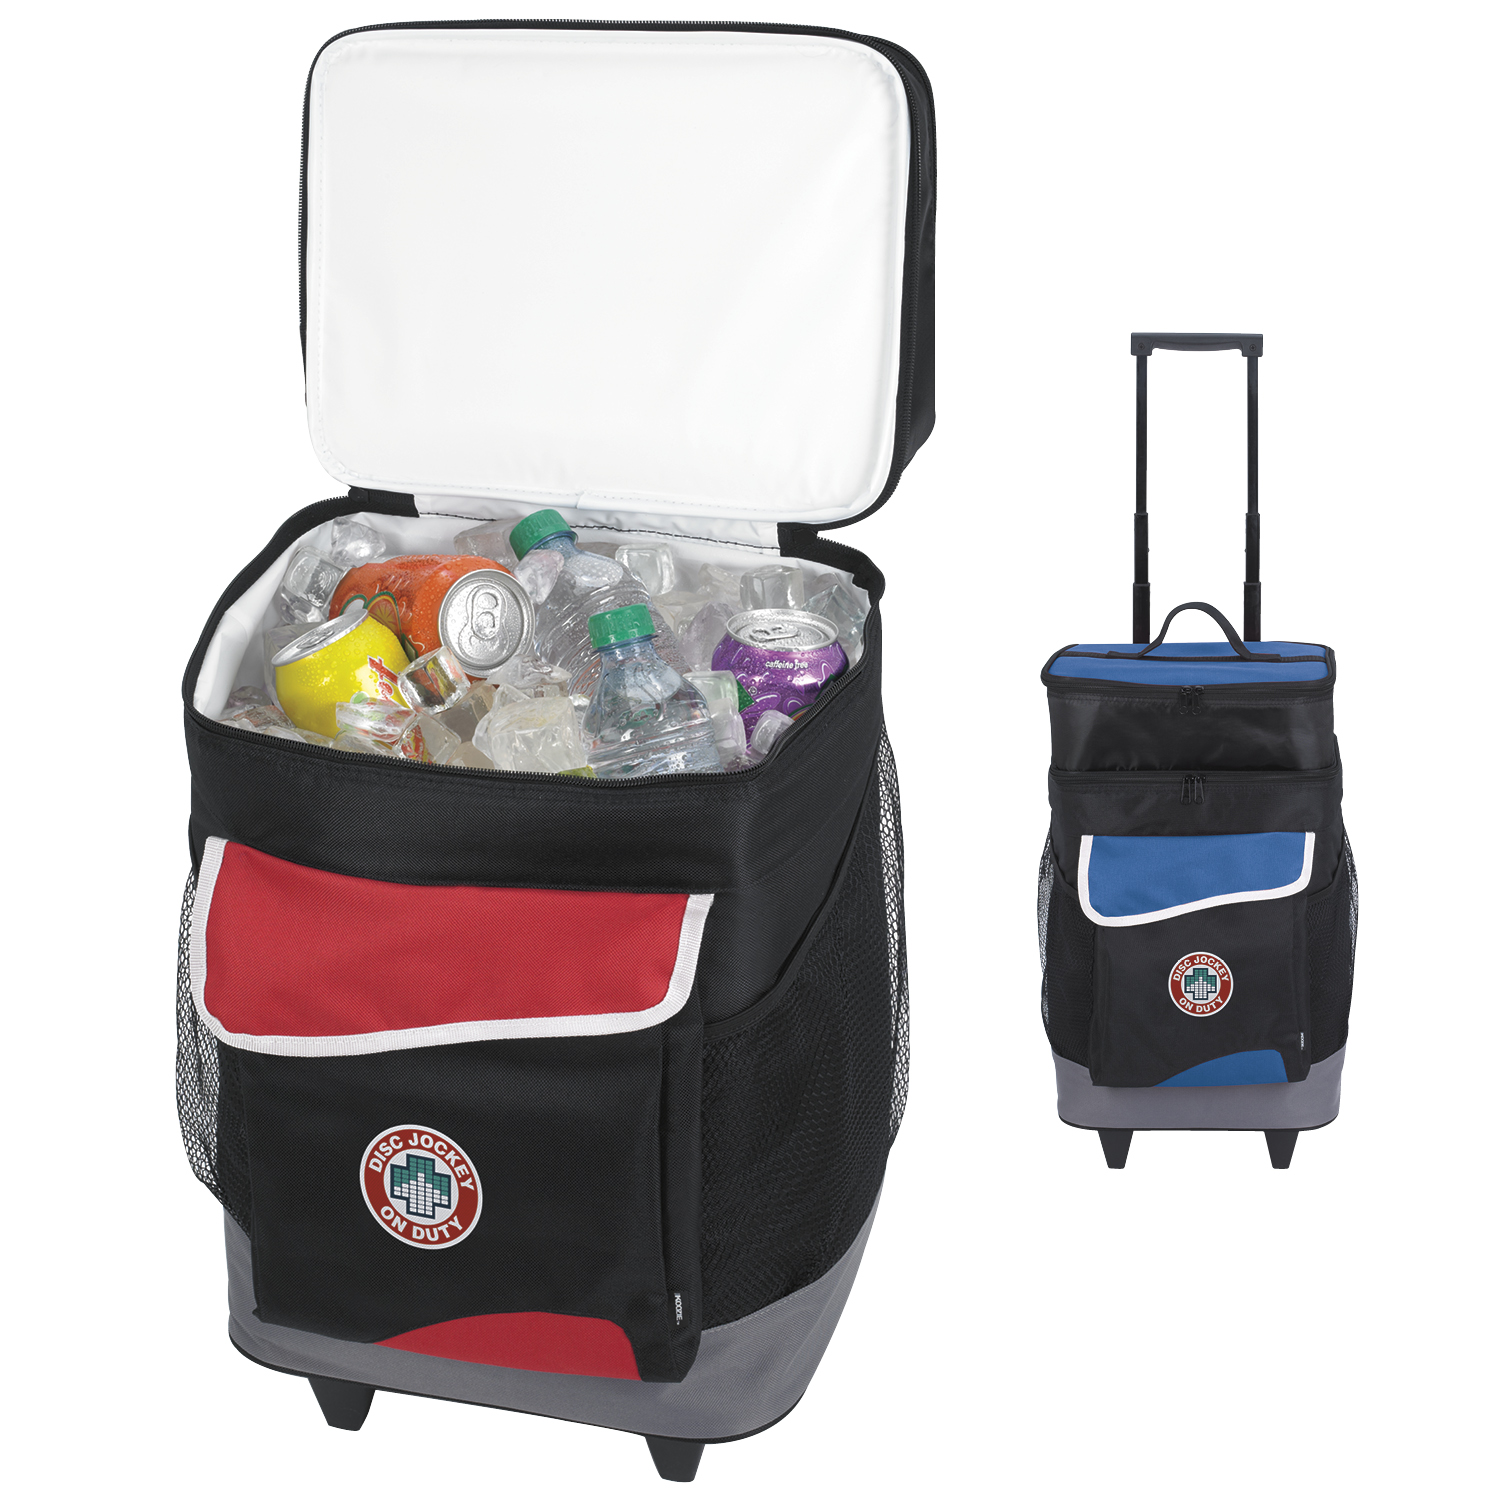 Koozie® 15741 Two-Compartment Rolling Kooler